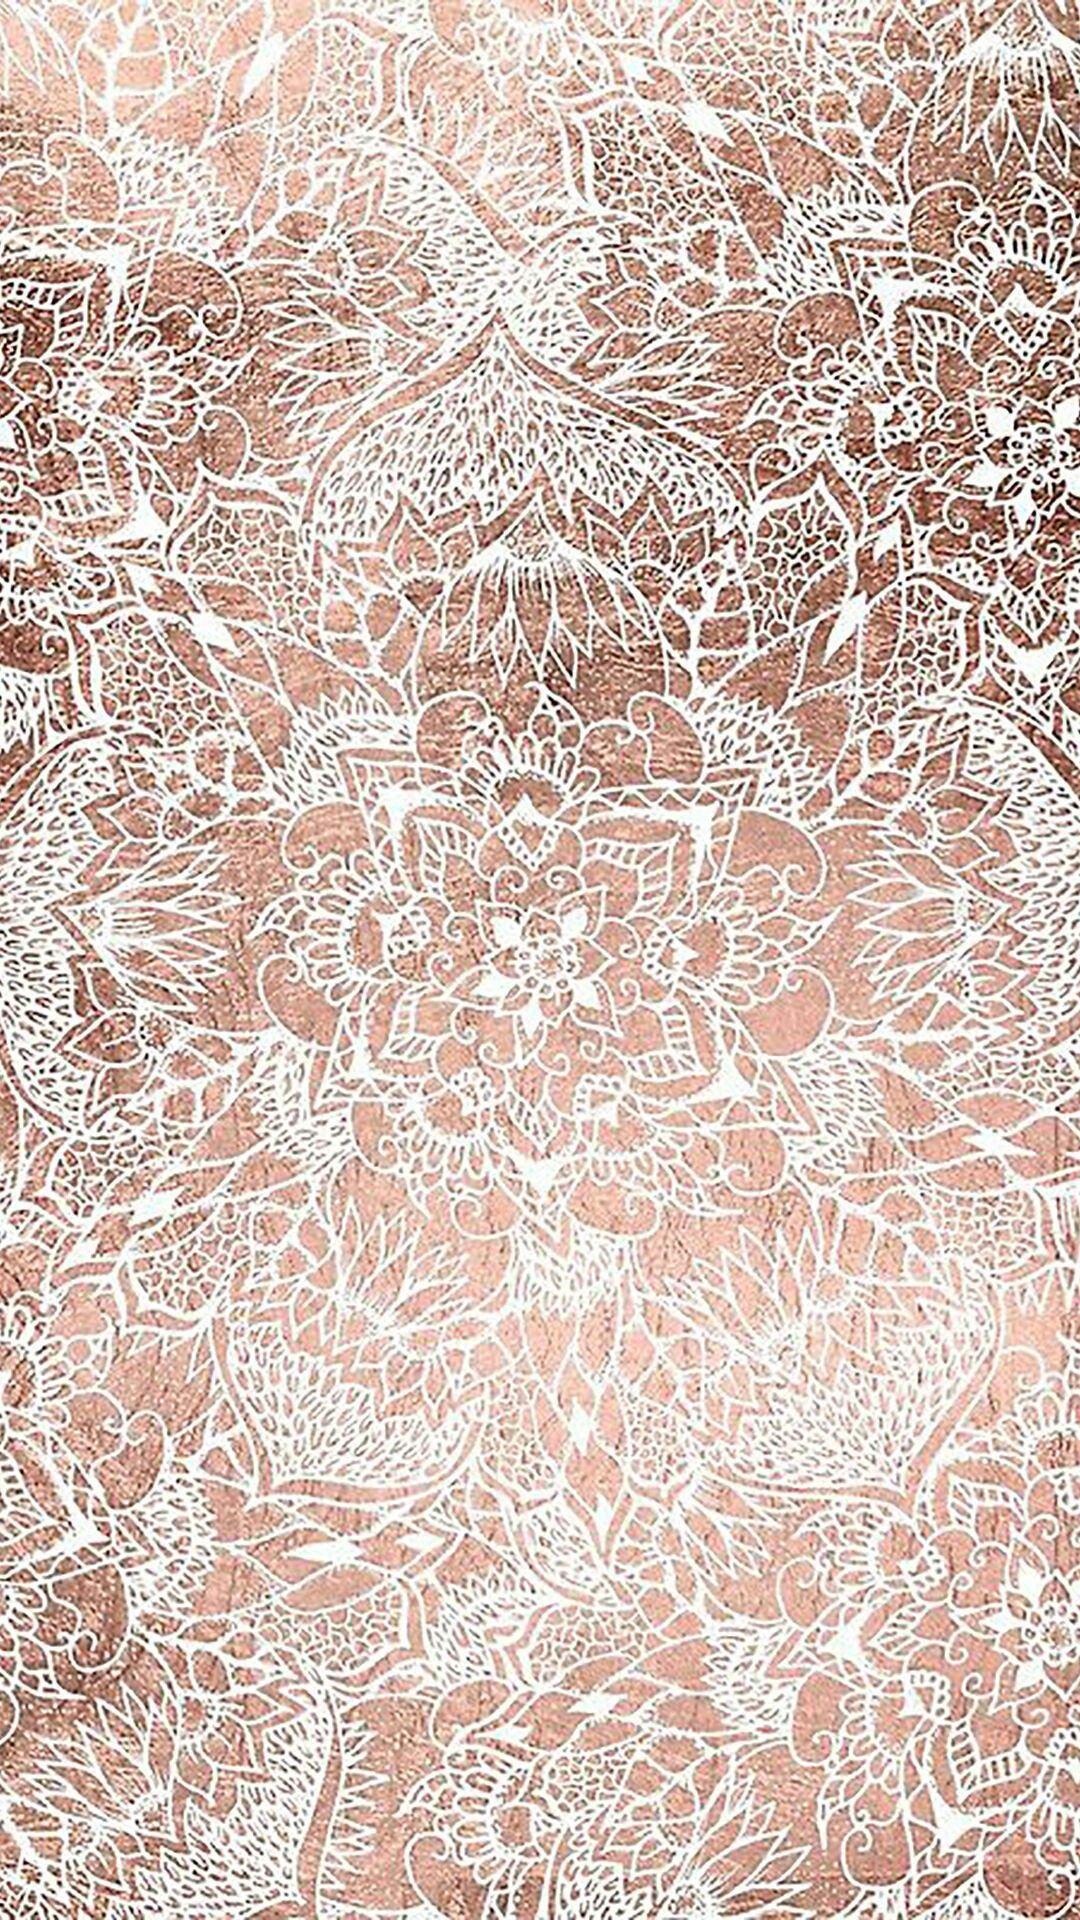 Pin by Lily Fuller on Inspiration Rose gold wallpaper